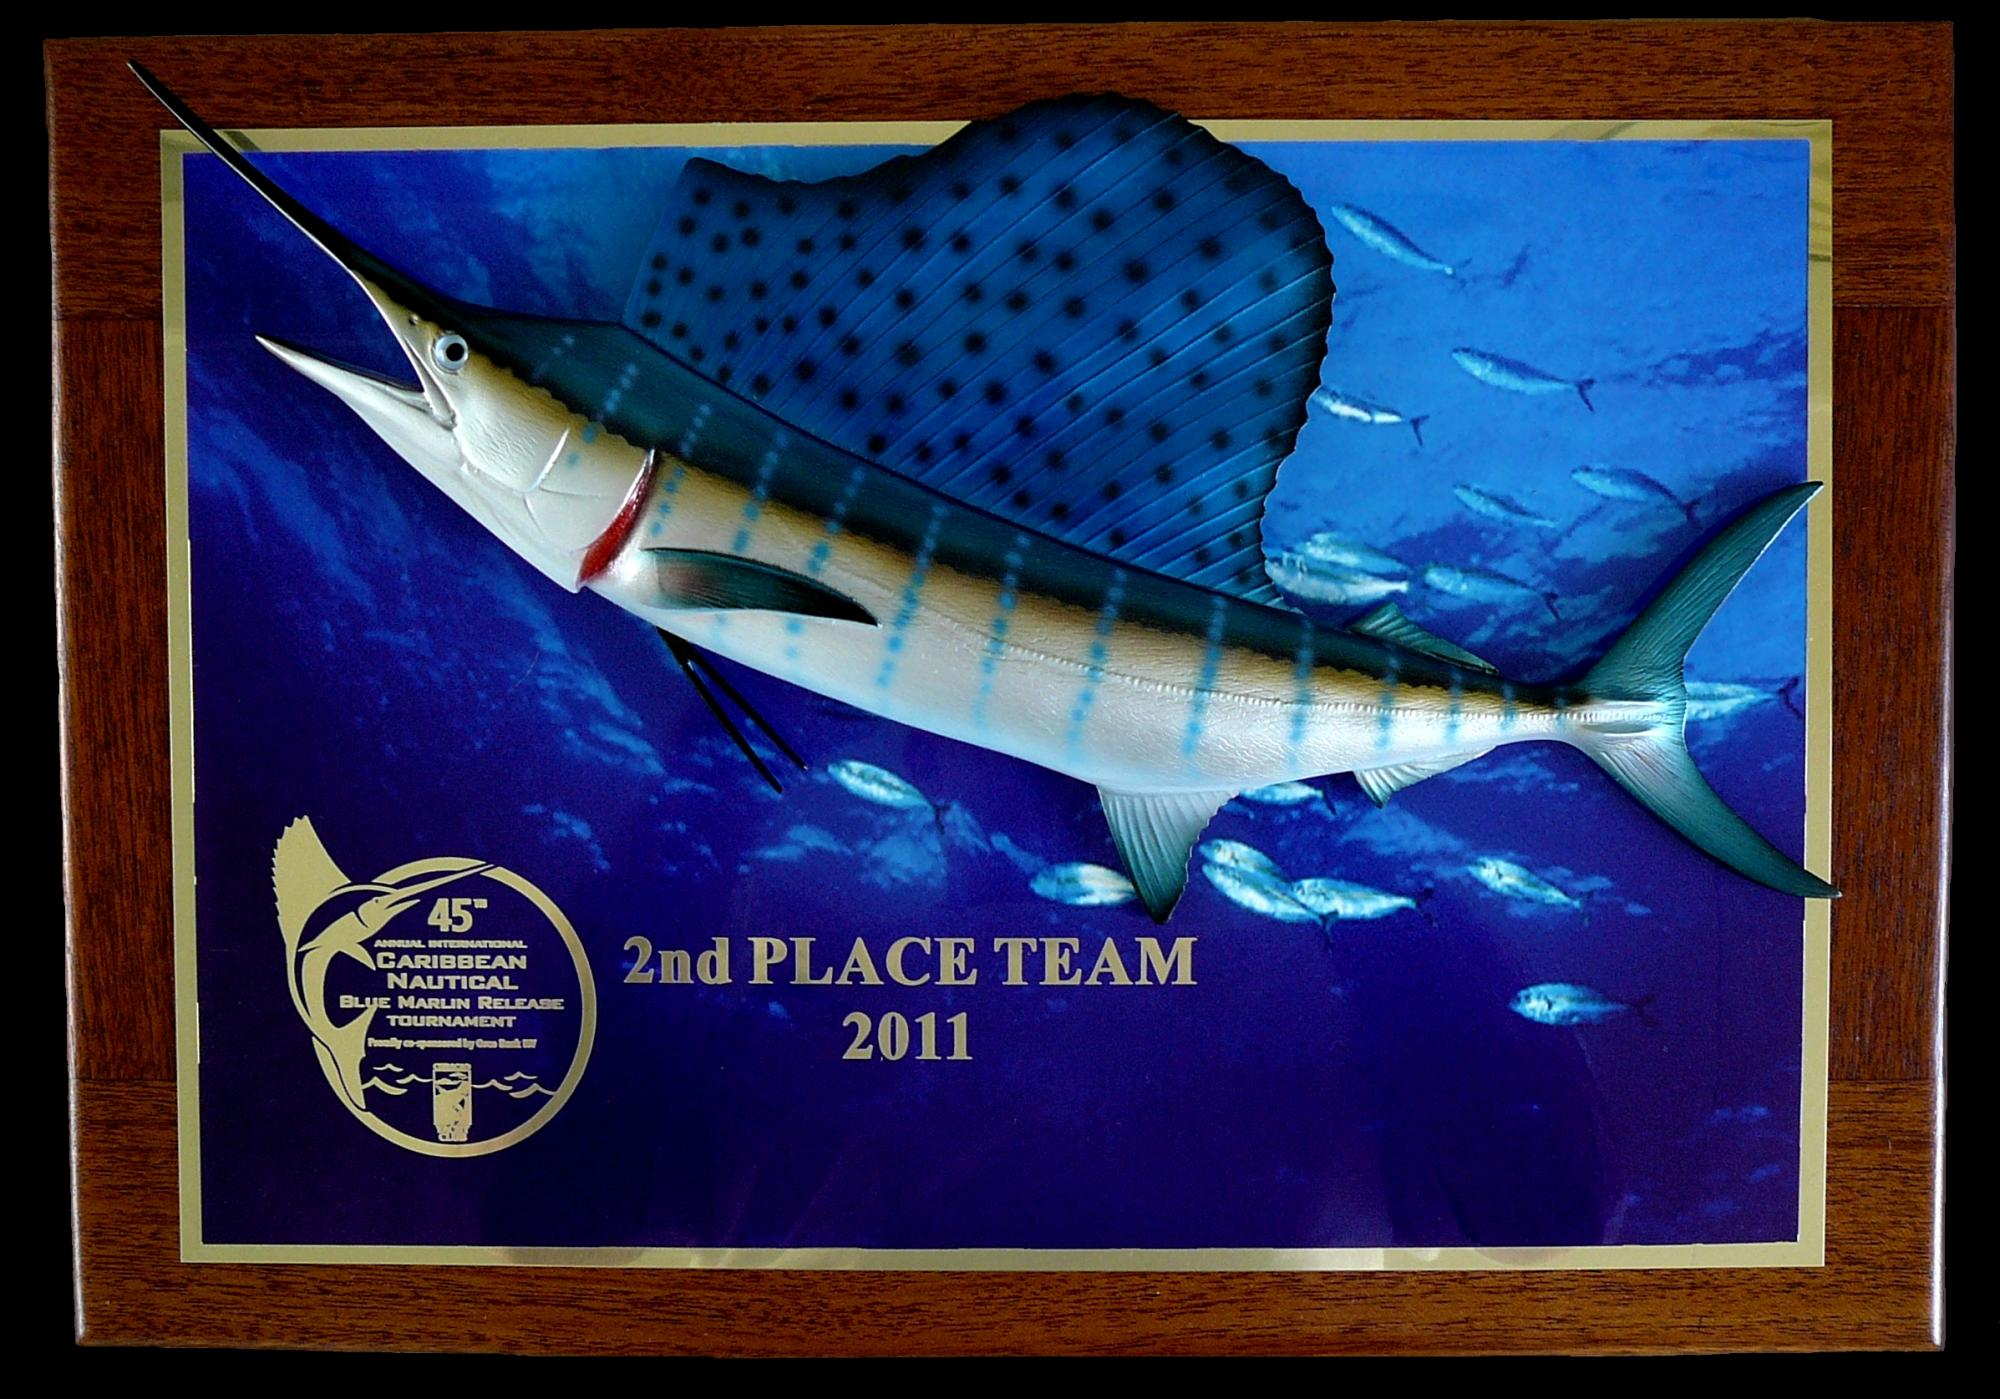 Sailfish_Plaque_19_photo.jpg